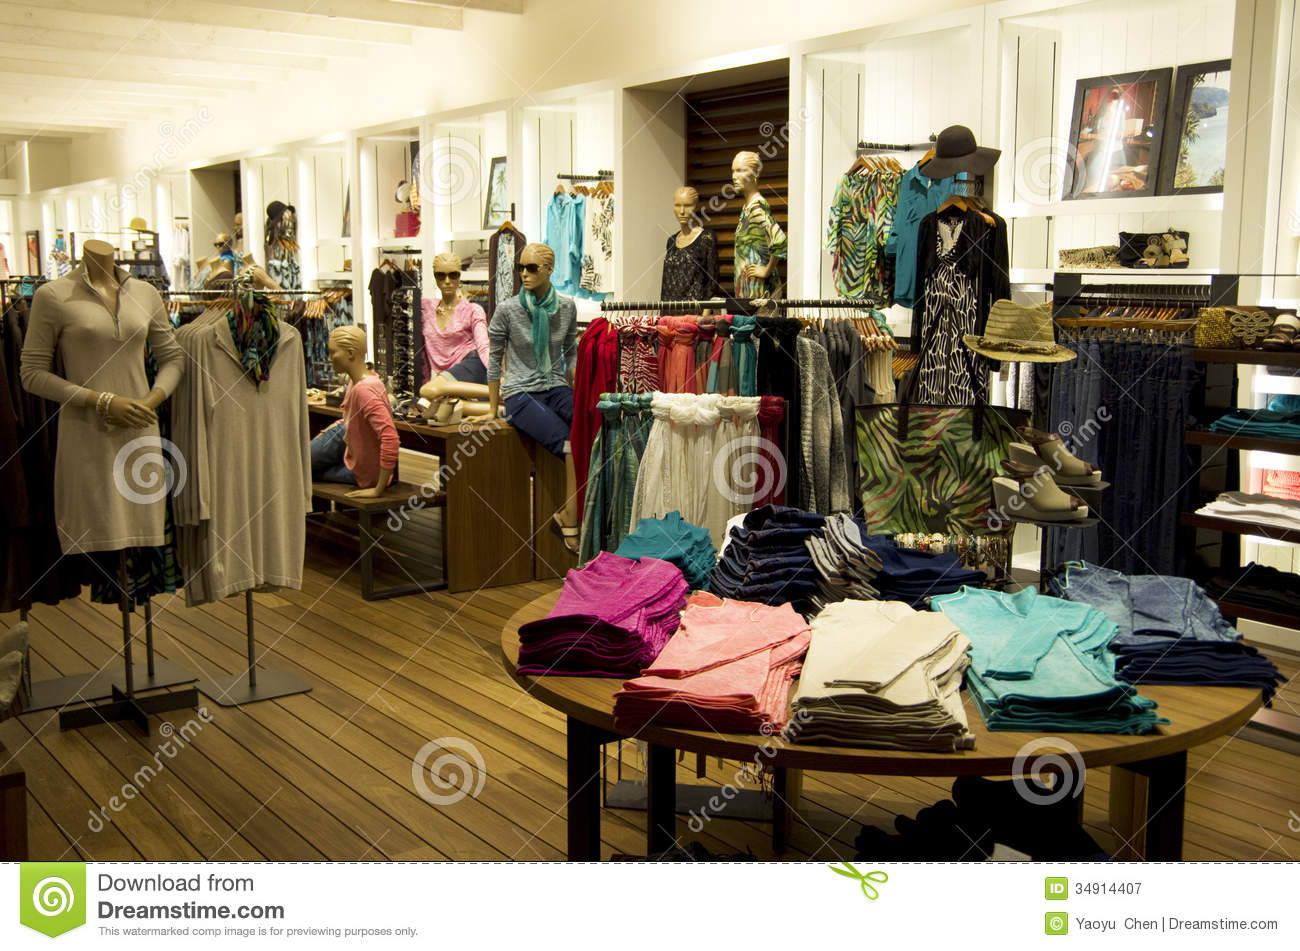 Women clothing stores. Cloth stores near me